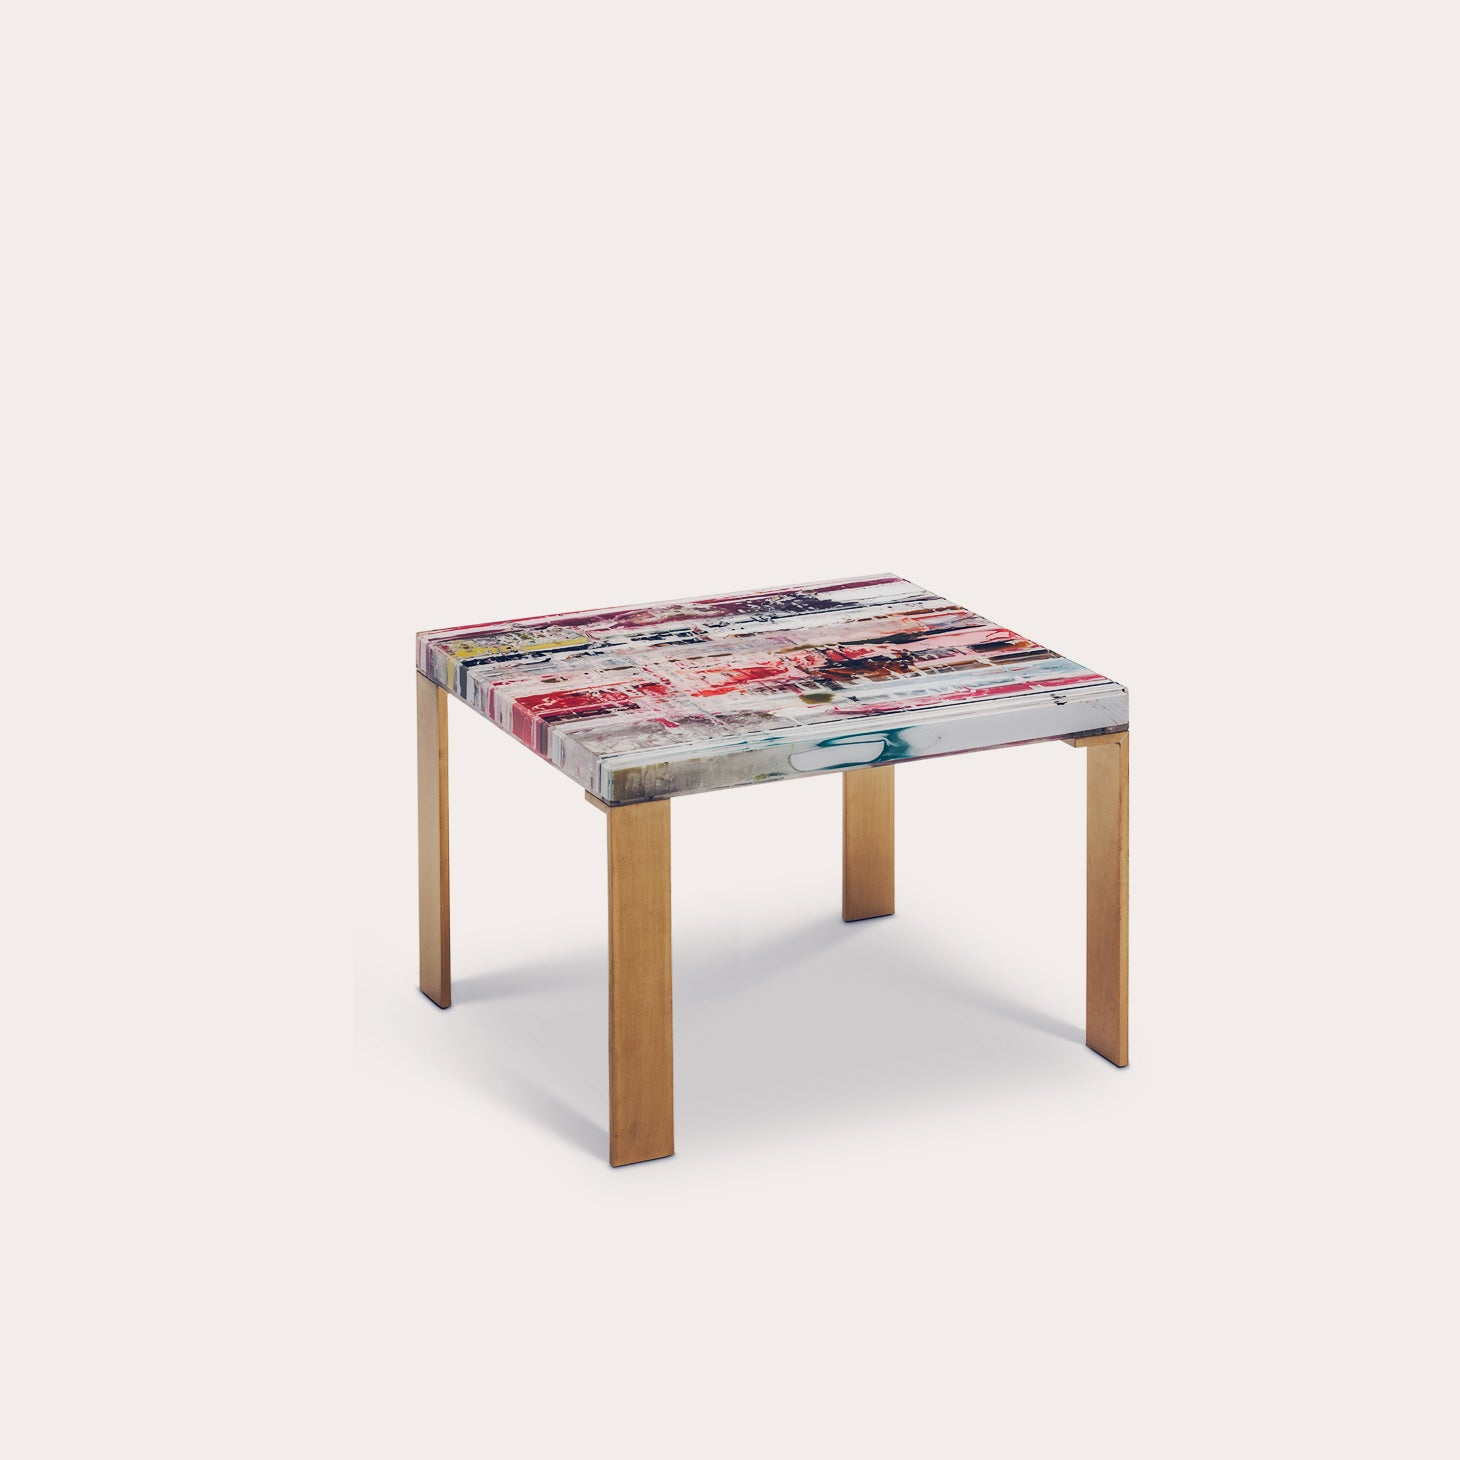 Artsy Tables Simone Coste Designer Furniture Sku: 992-230-10048